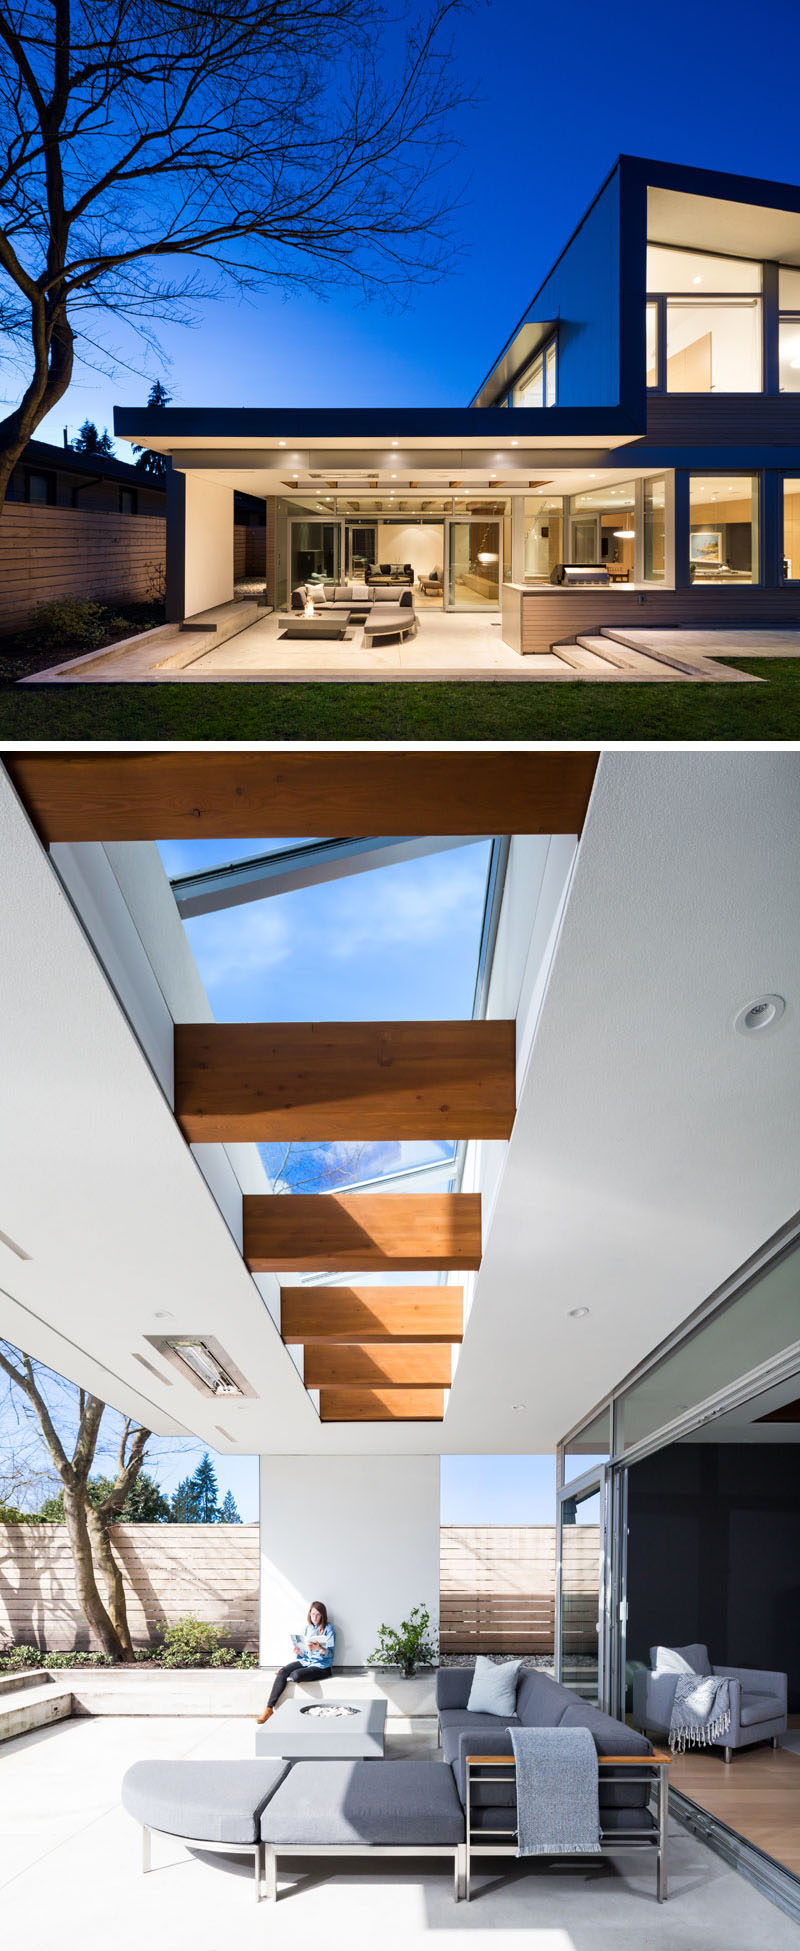 This modern house has large panes of floor-to-ceiling glass allow for a seamless integration between the interior and exterior space. The covered outdoor space makes use of a skylight that shows off the beams that continue through to the patio. #ModernHouse #Patio #Beams #Skylight #OutdoorSpace